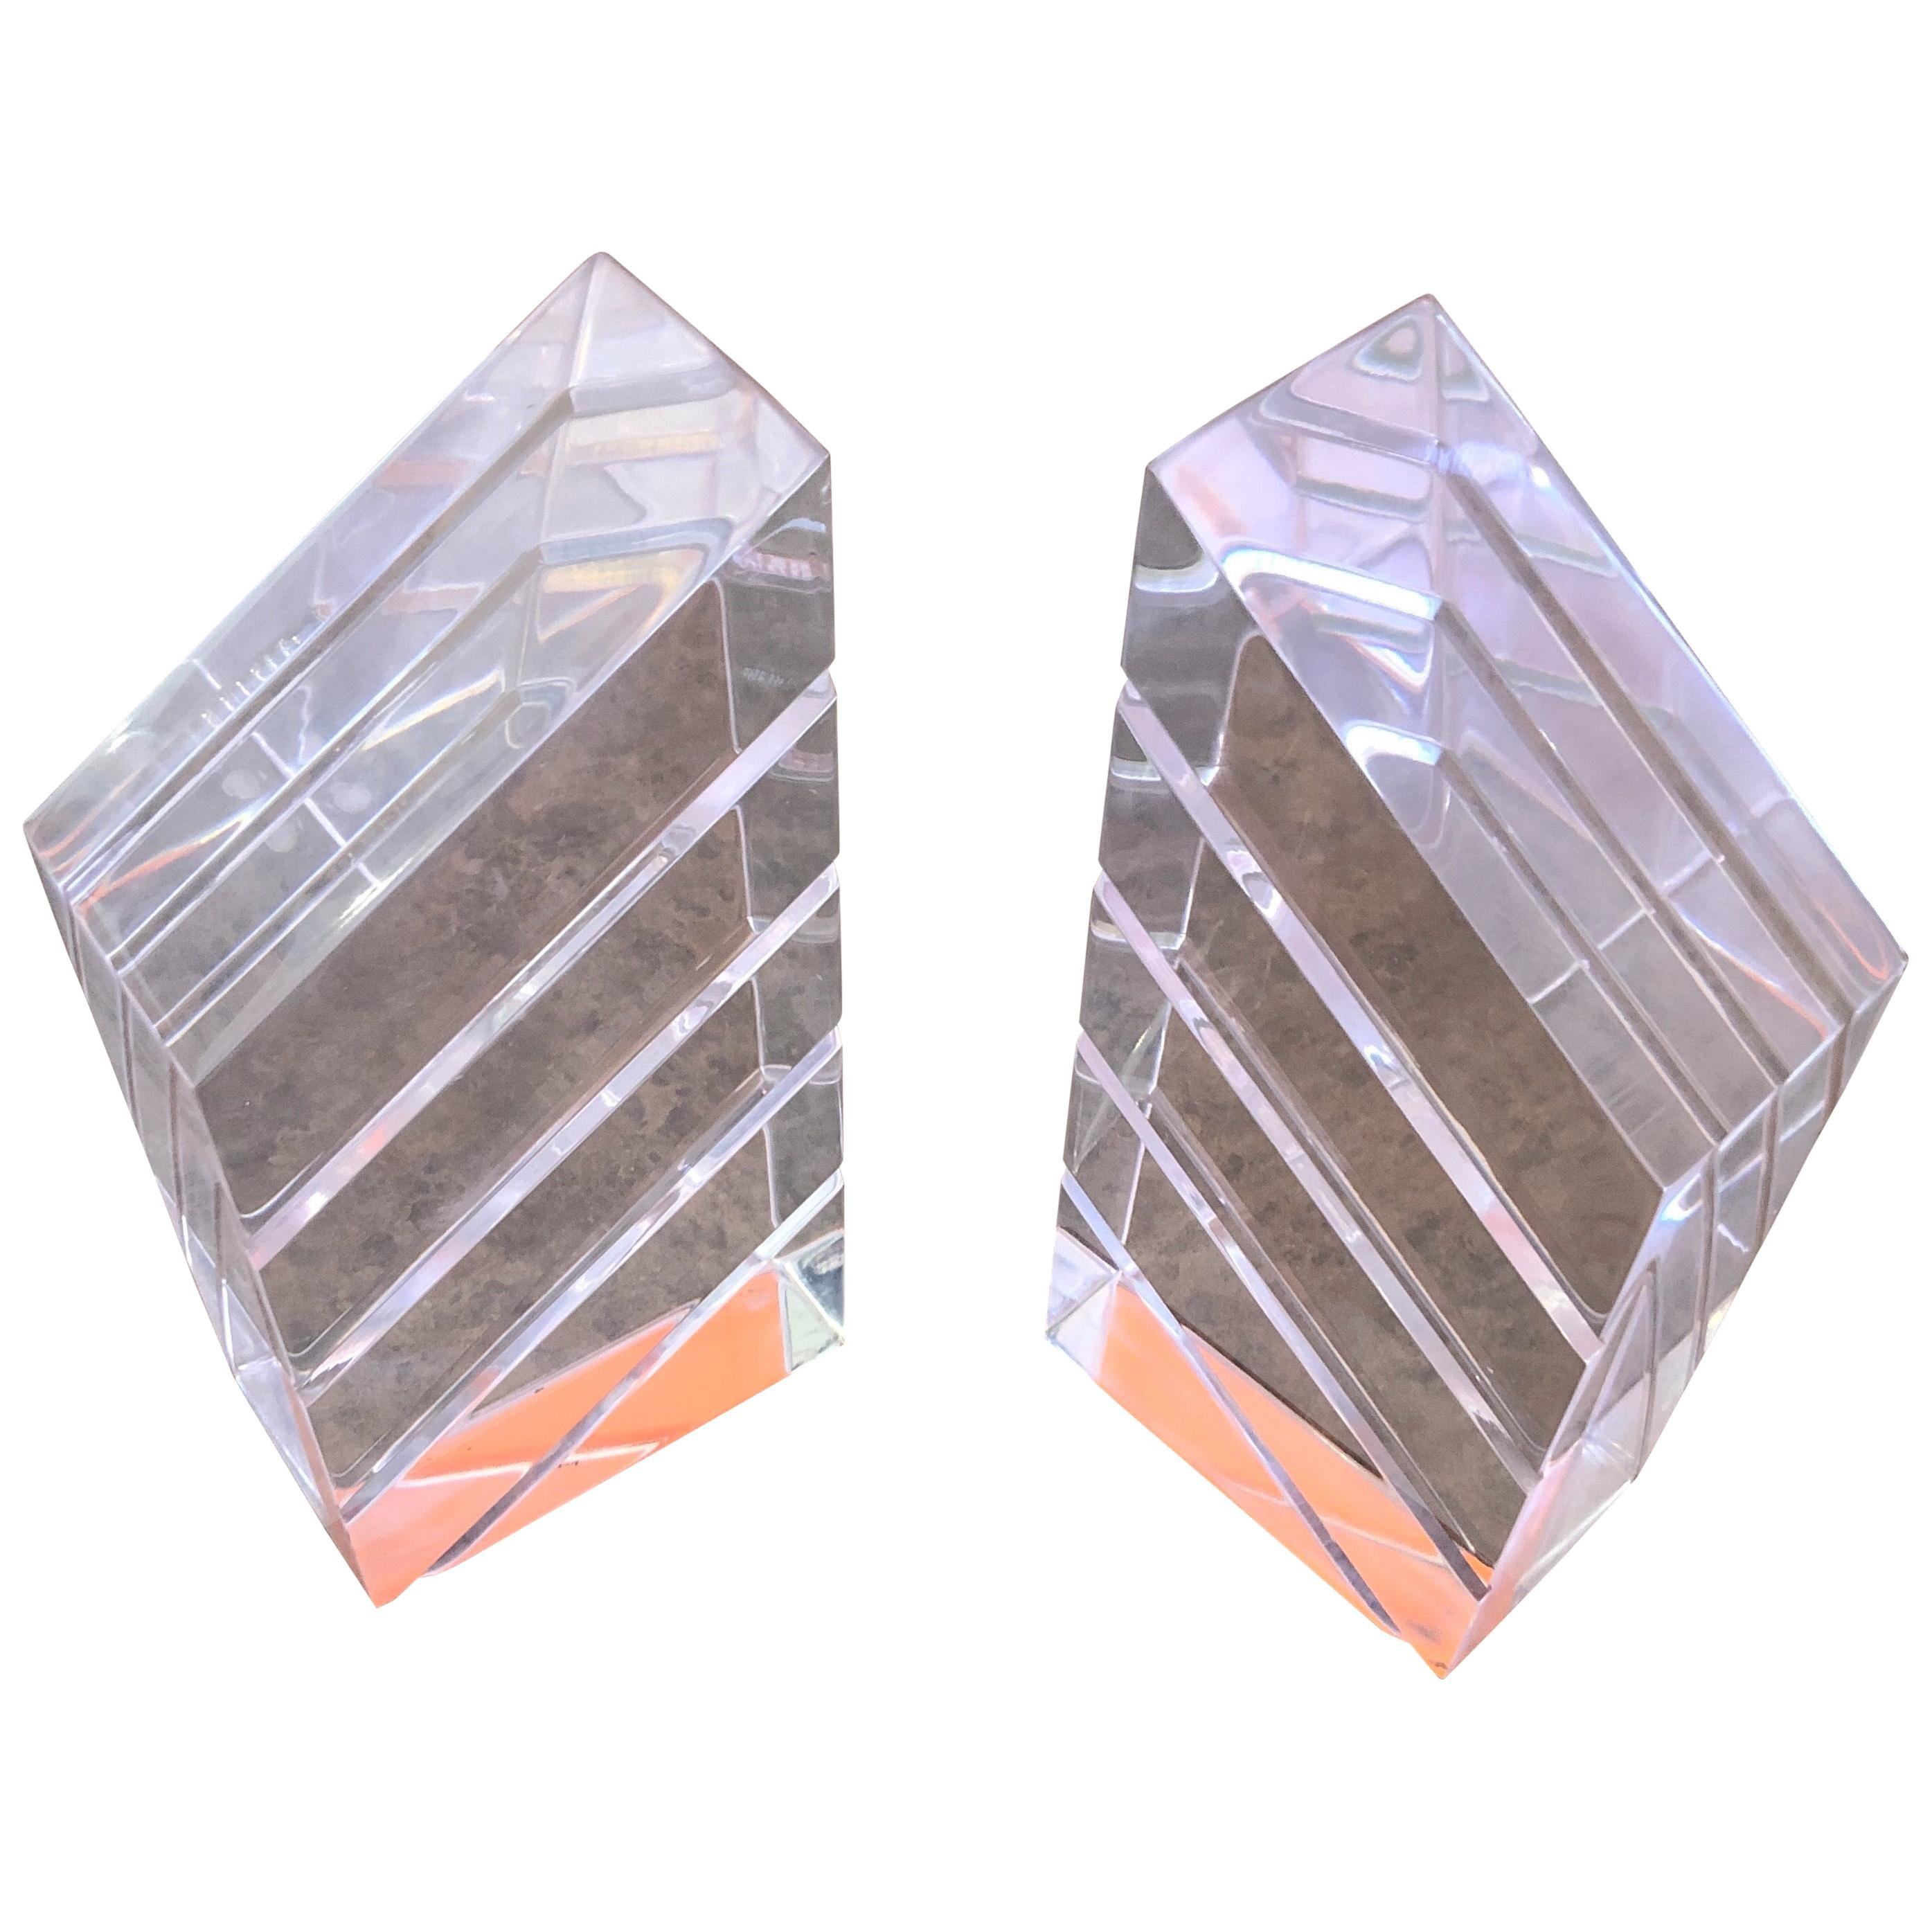 Pair of Midcentury Lucite Bookends by Herb Ritts for Astrolite